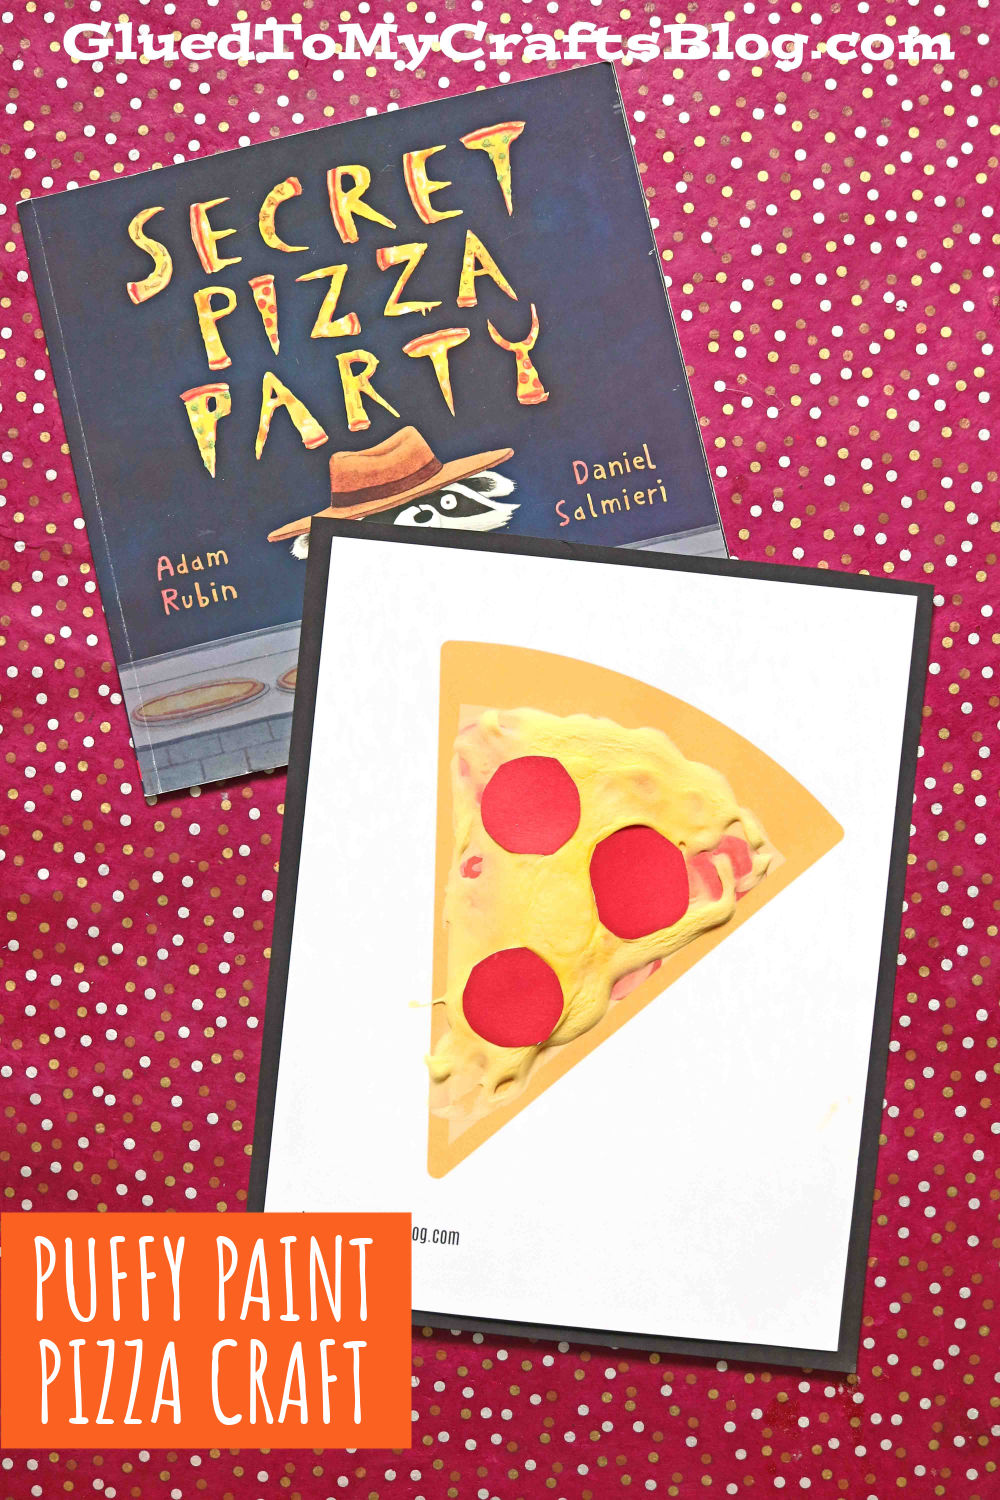 Puffy Paint Pizza Craft Idea For Kids - Free Printable Template Included!